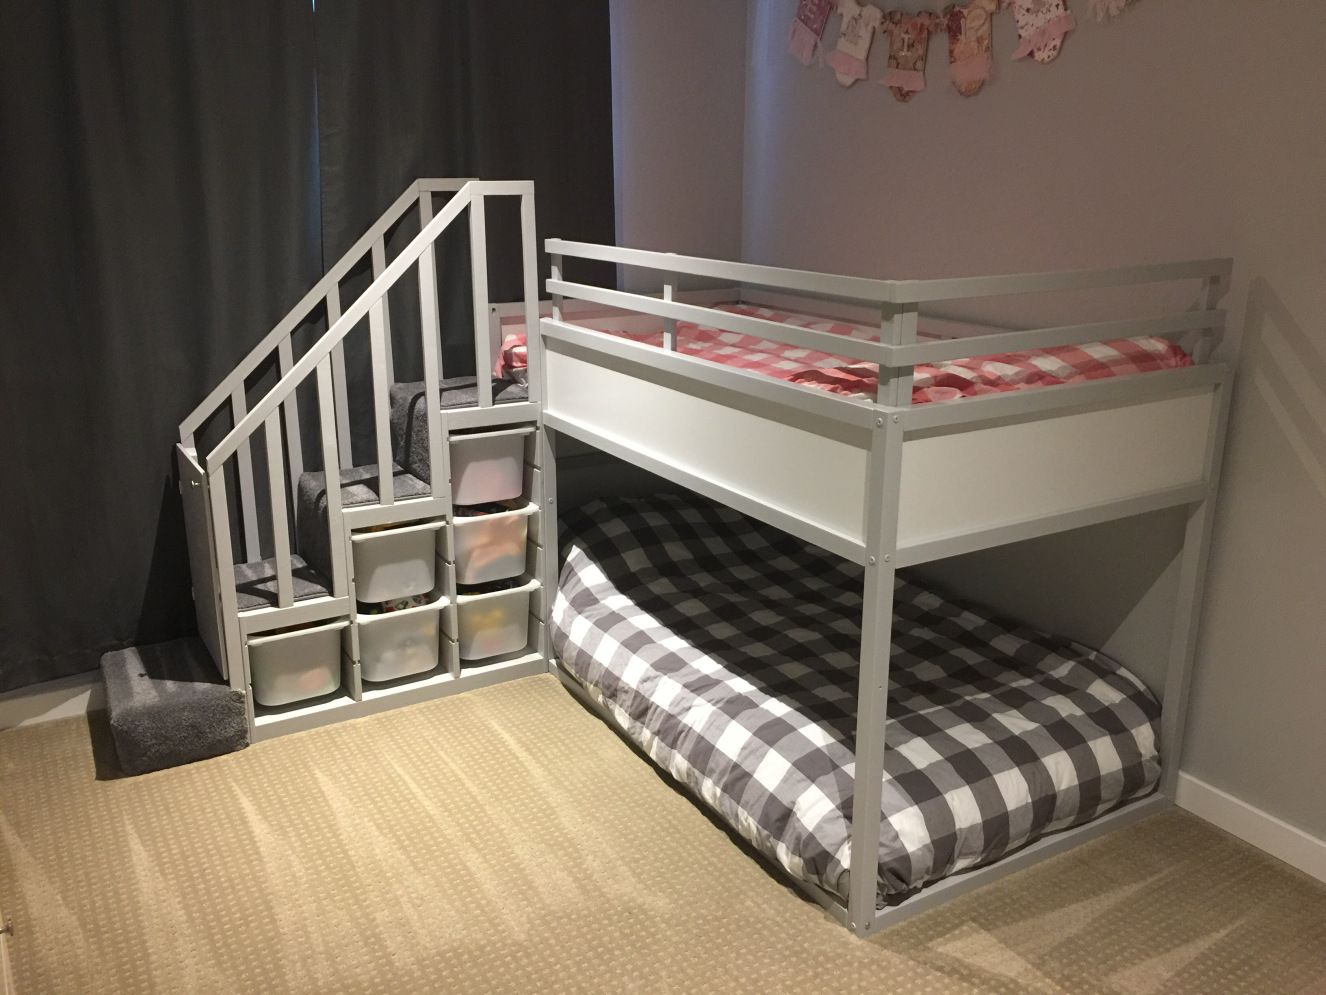 ikea kura bunk bed hack stacy and eric pinterest bett und kinderzimmer. Black Bedroom Furniture Sets. Home Design Ideas